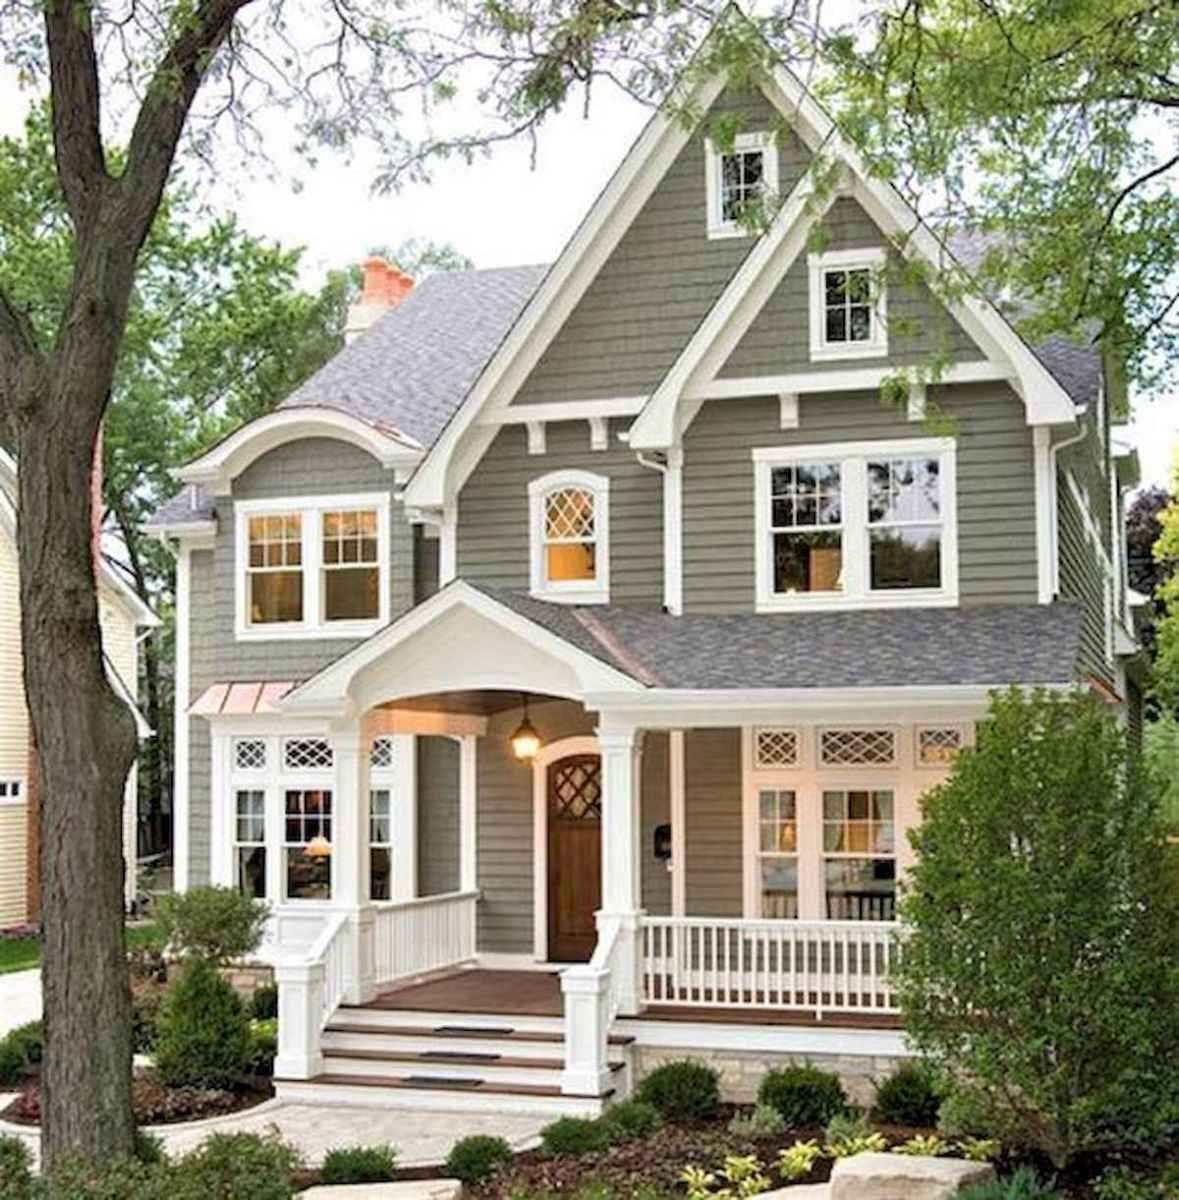 40 Stunning White Farmhouse Exterior Design Ideas (7)